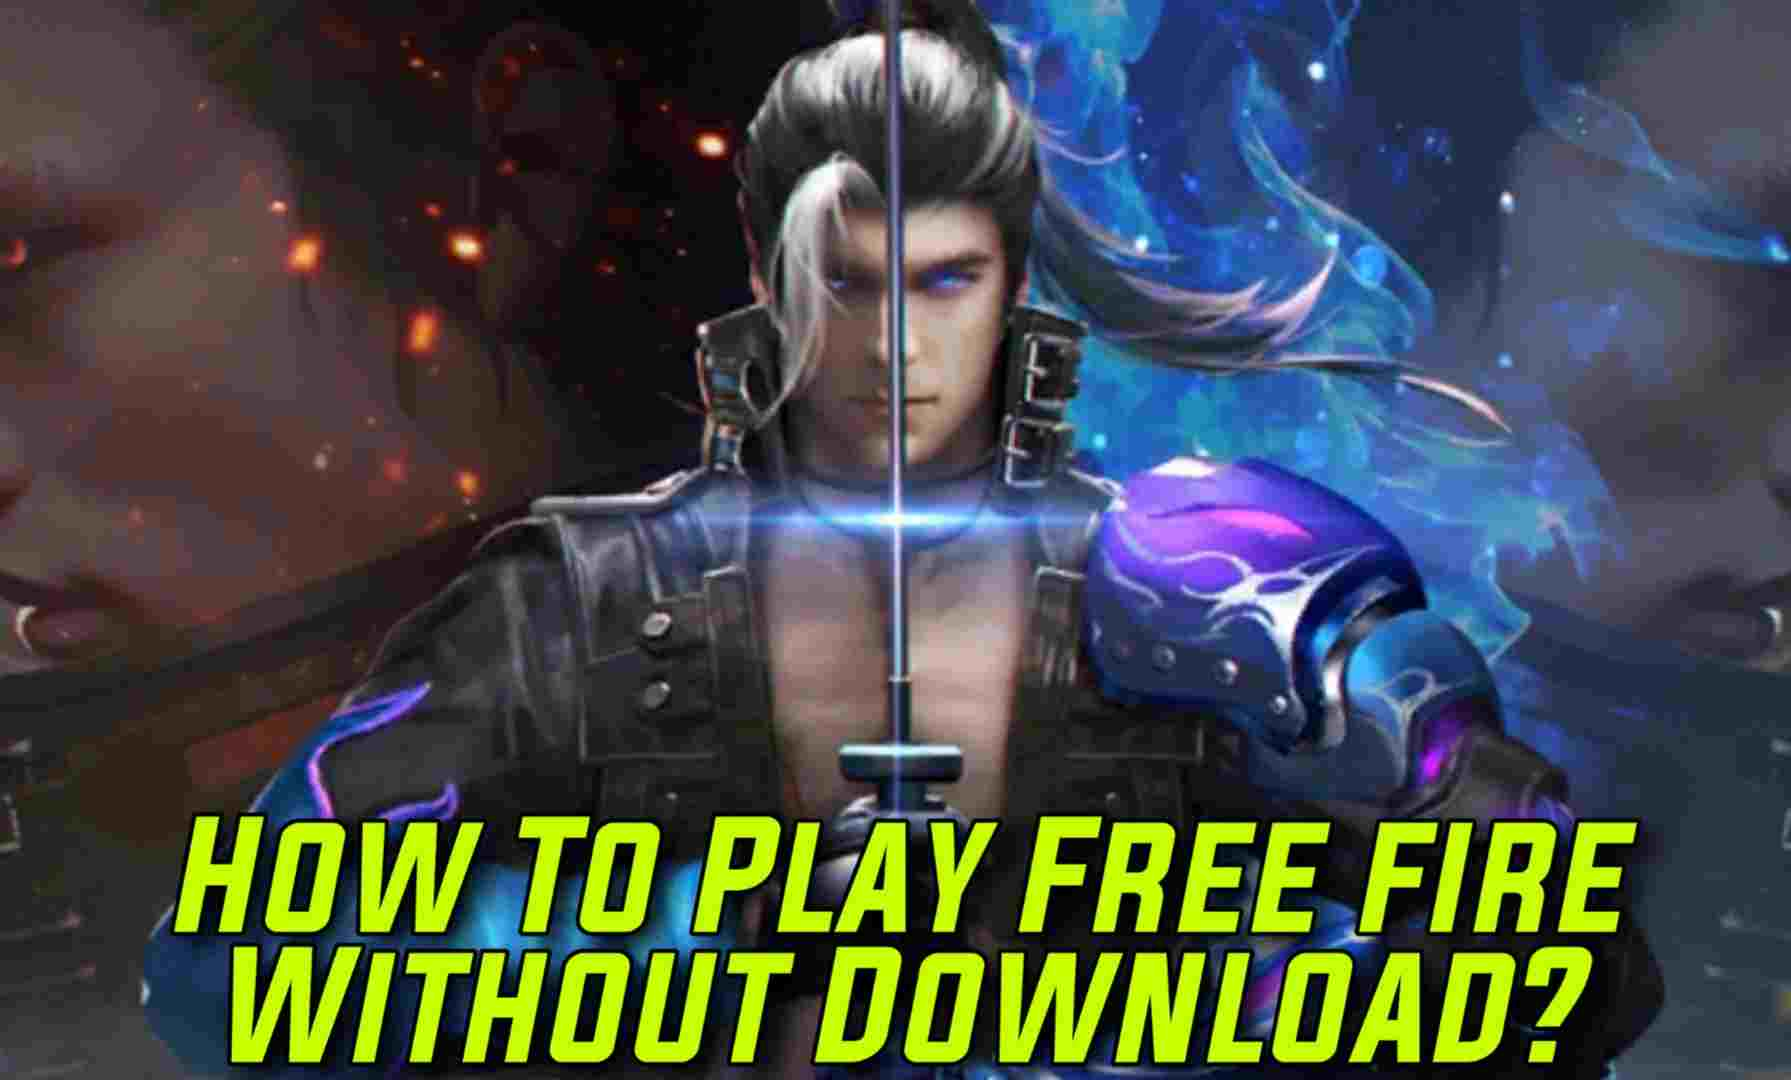 Guide on how to Play free fire without download